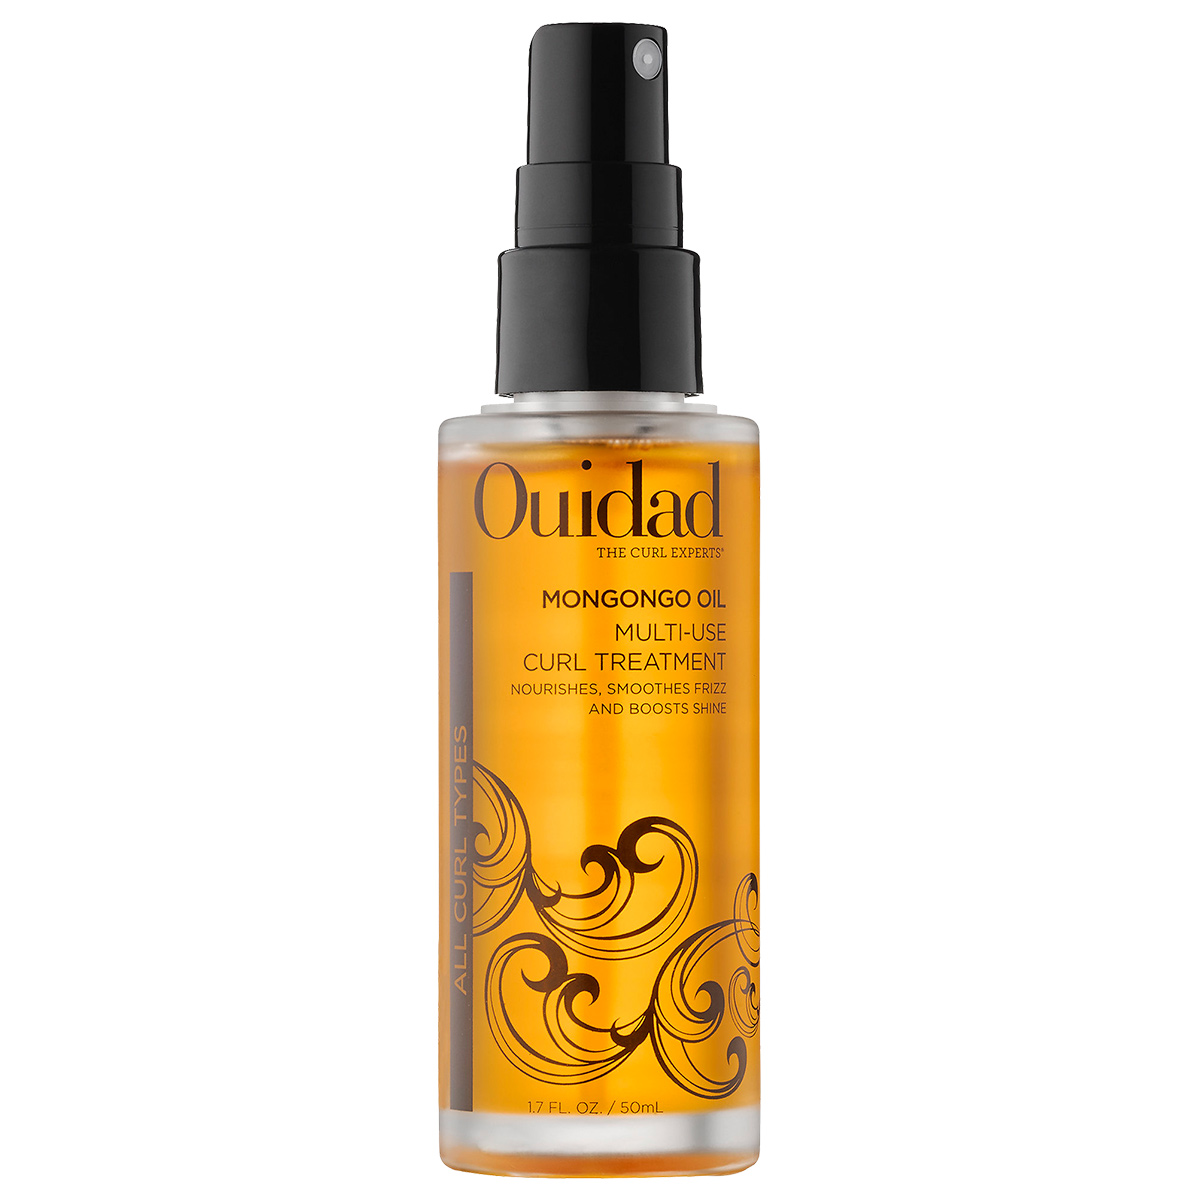 For Curly Hair: Ouidad Mongongo Oil Multi-Use Curl Treatment